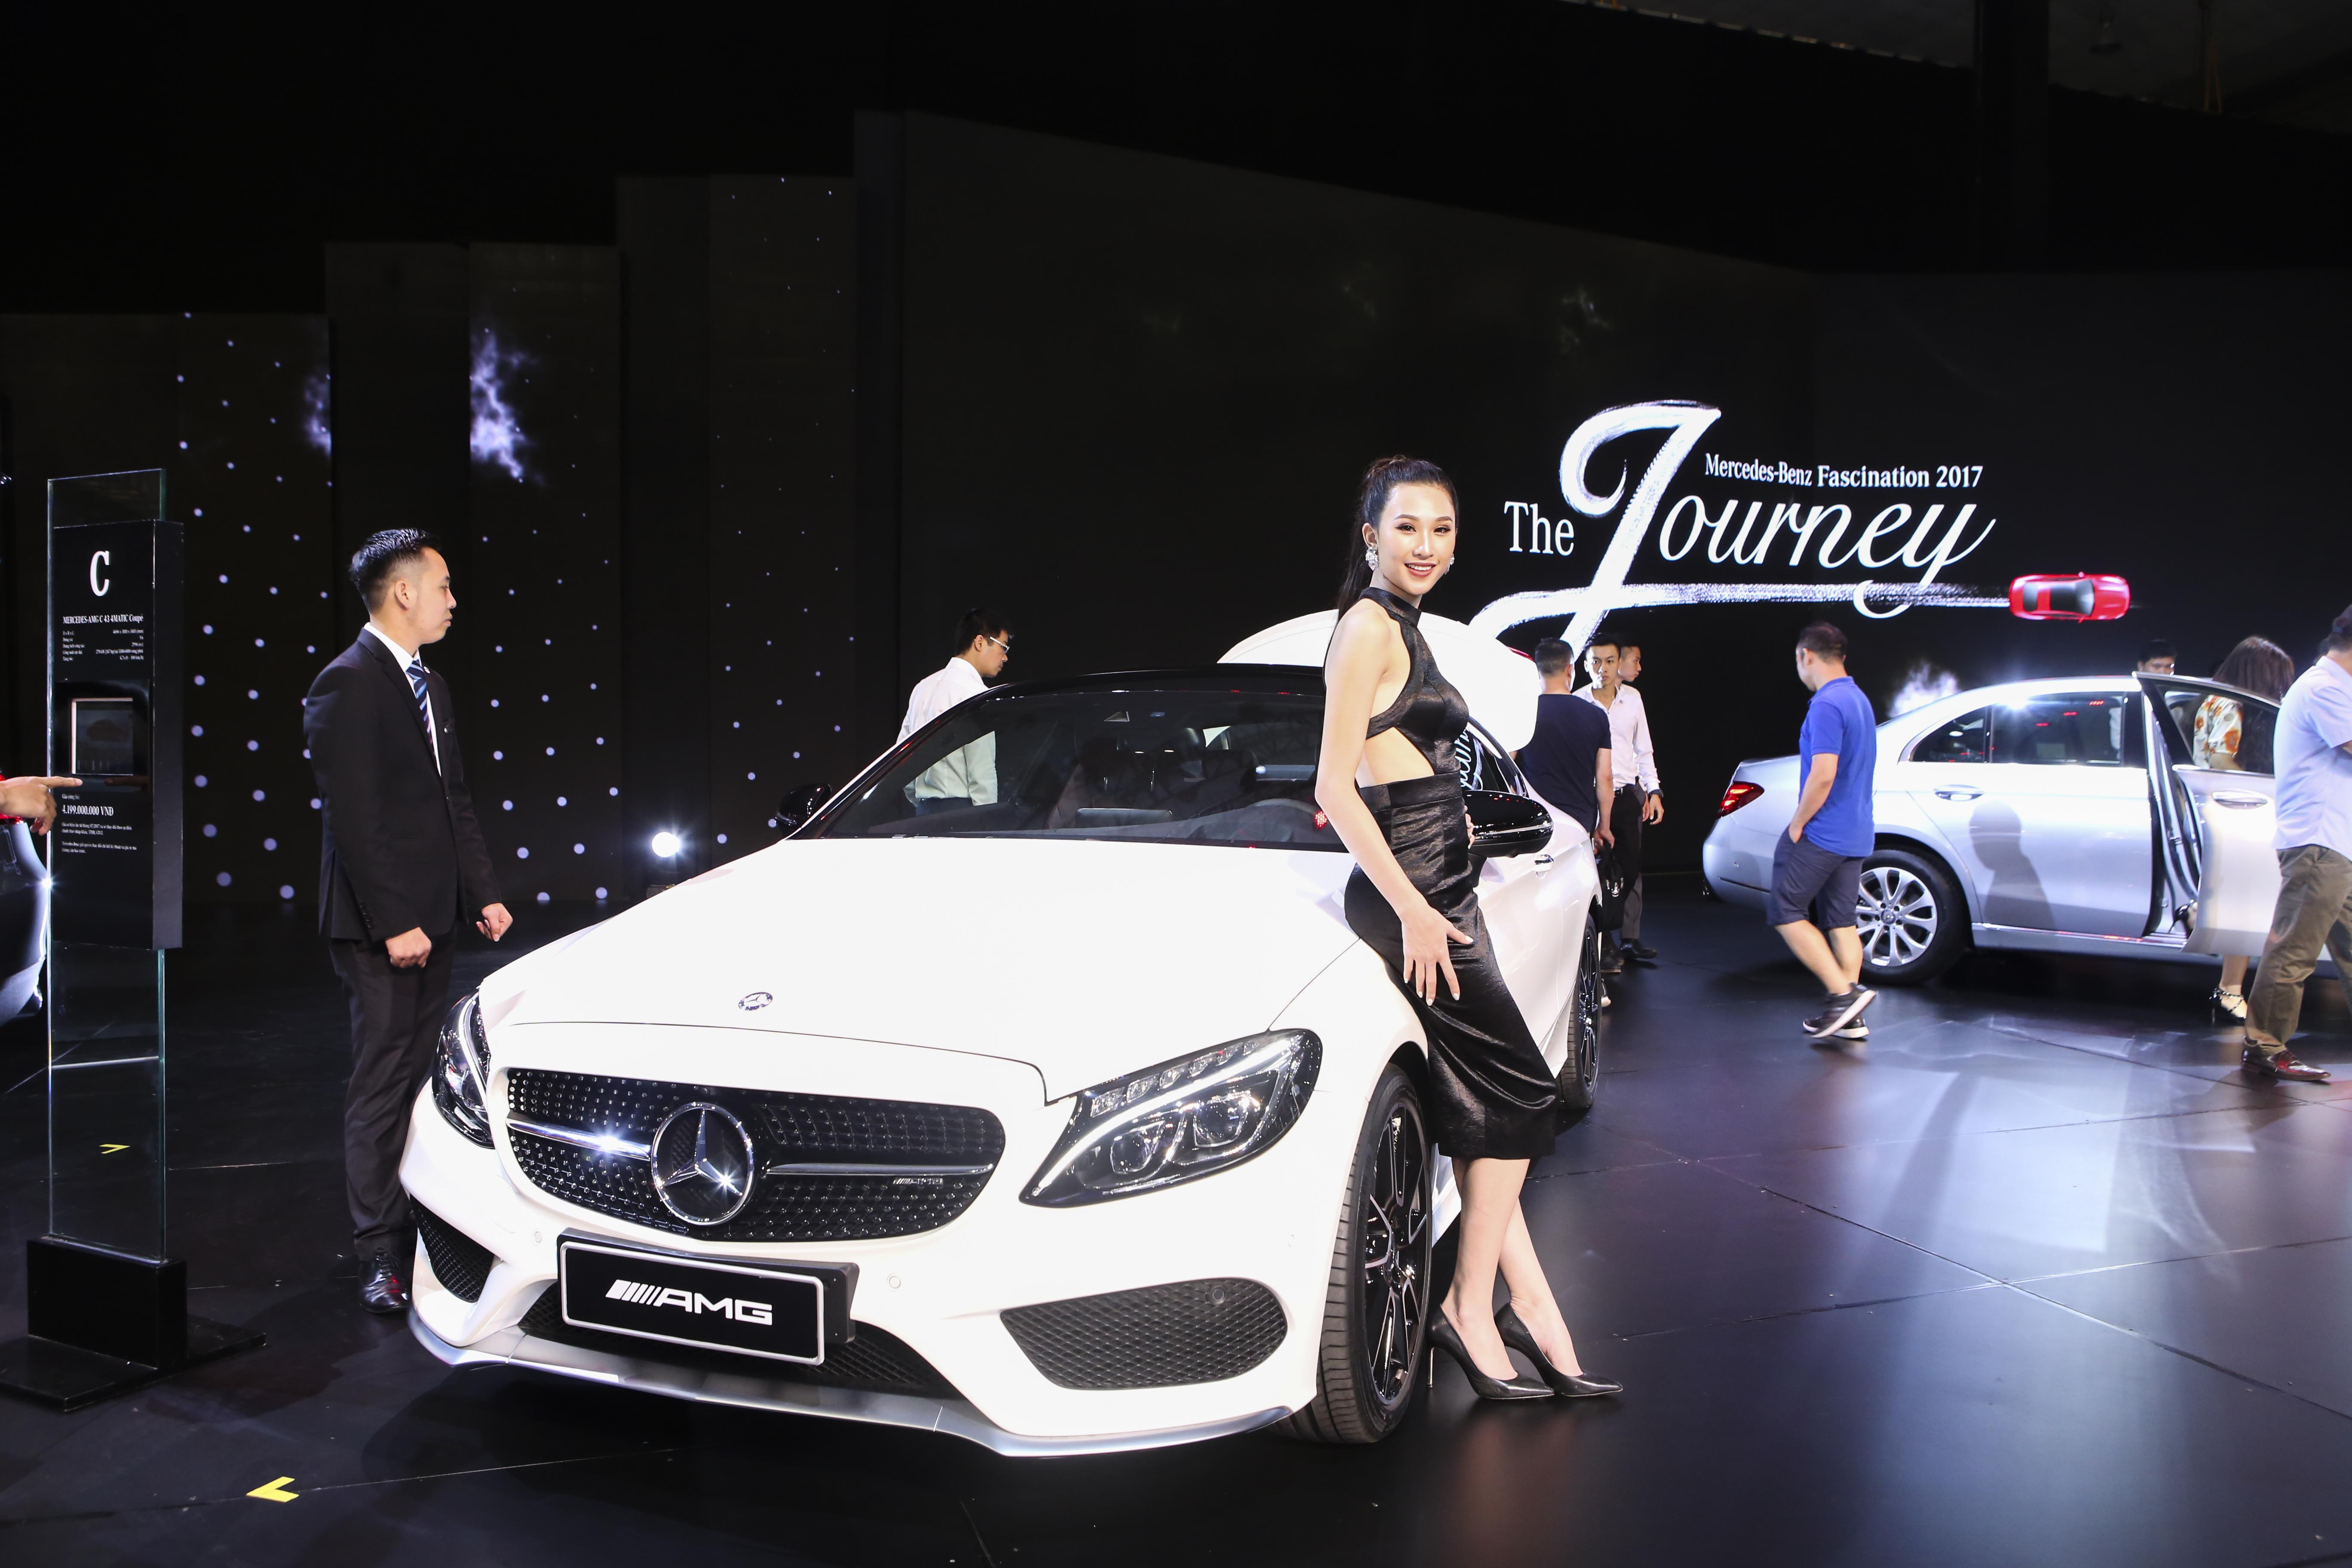 Mercedes-Benz Fascination 2017 invites visitors on a journey